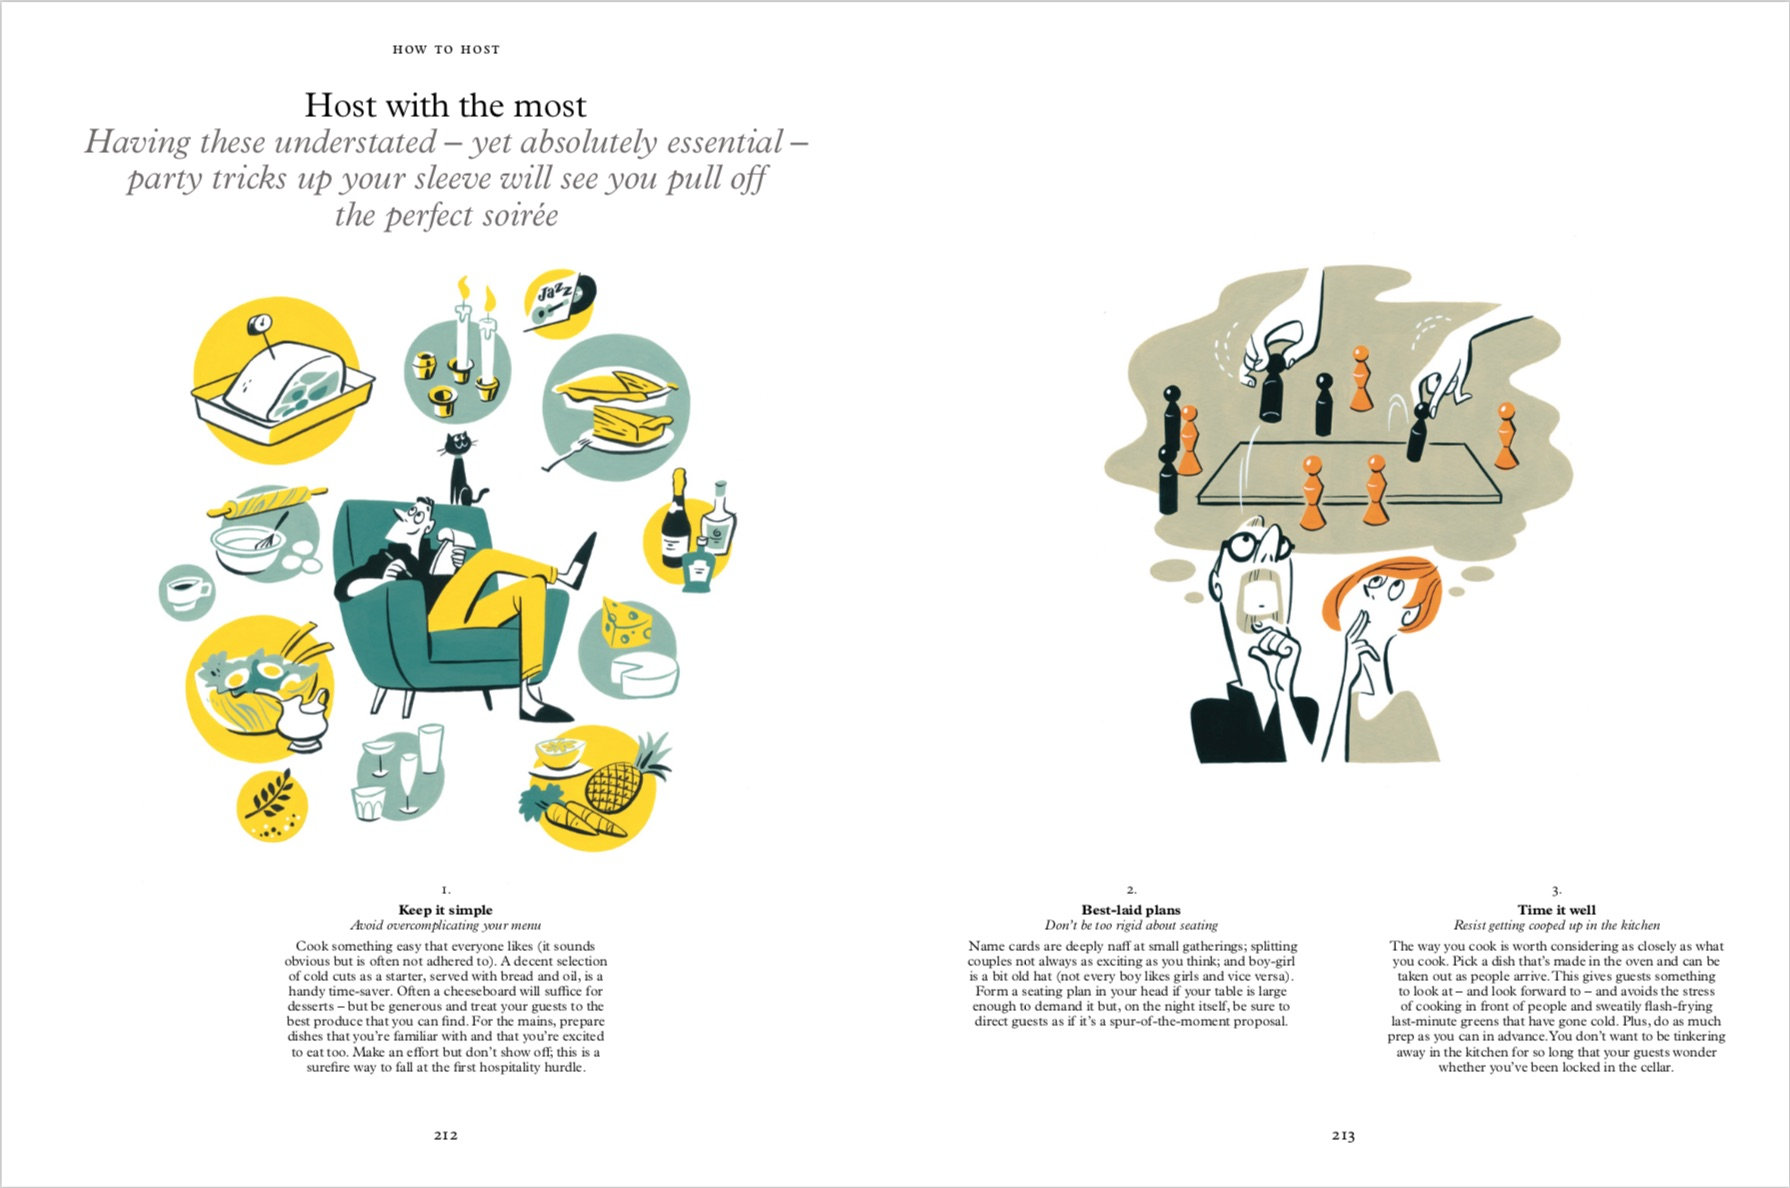 By Monocle from The Monocle Guide to Drinking & Dining copyright Gestalten 2016